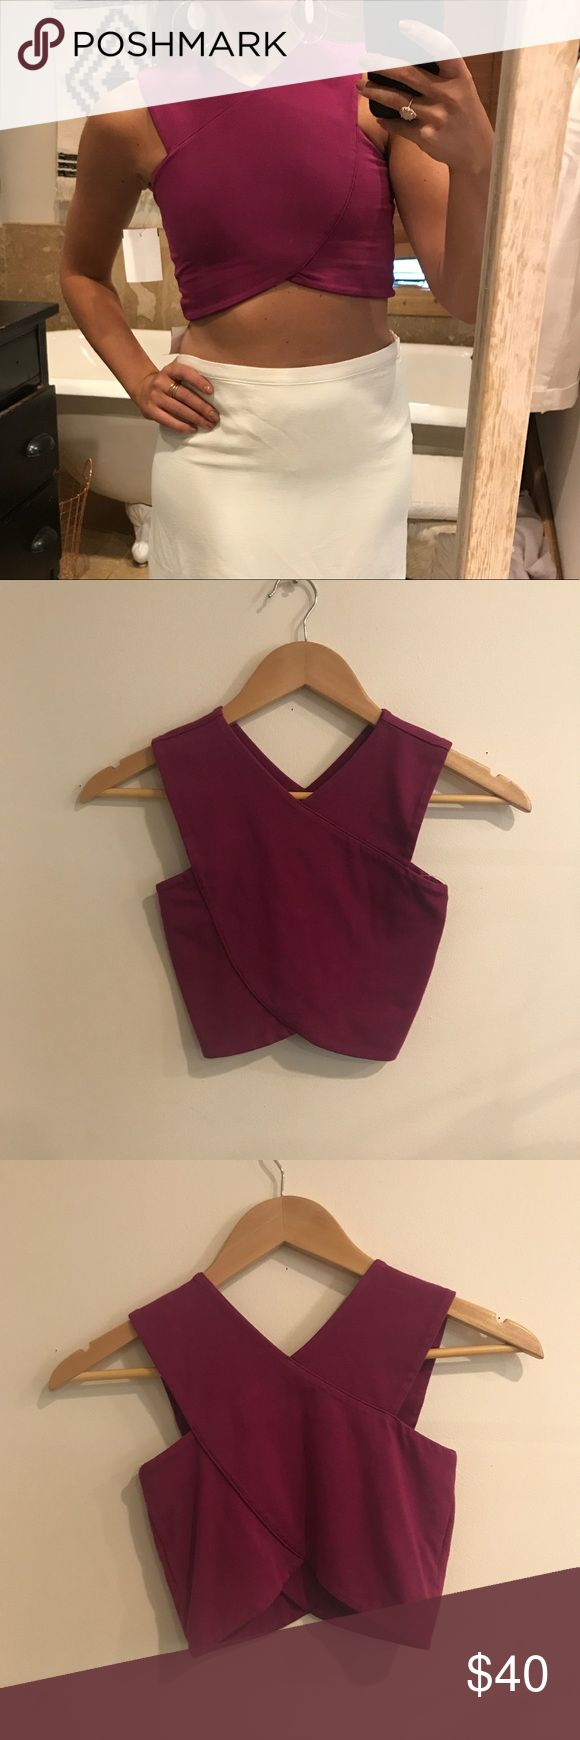 LF Emma & Sam Cross Crop Top Magenta Criss Cross crop top by Emma & Sam. Extremely flattering and comfortable top. I am modeling an XS. XS and S available. LF Tops Crop Tops